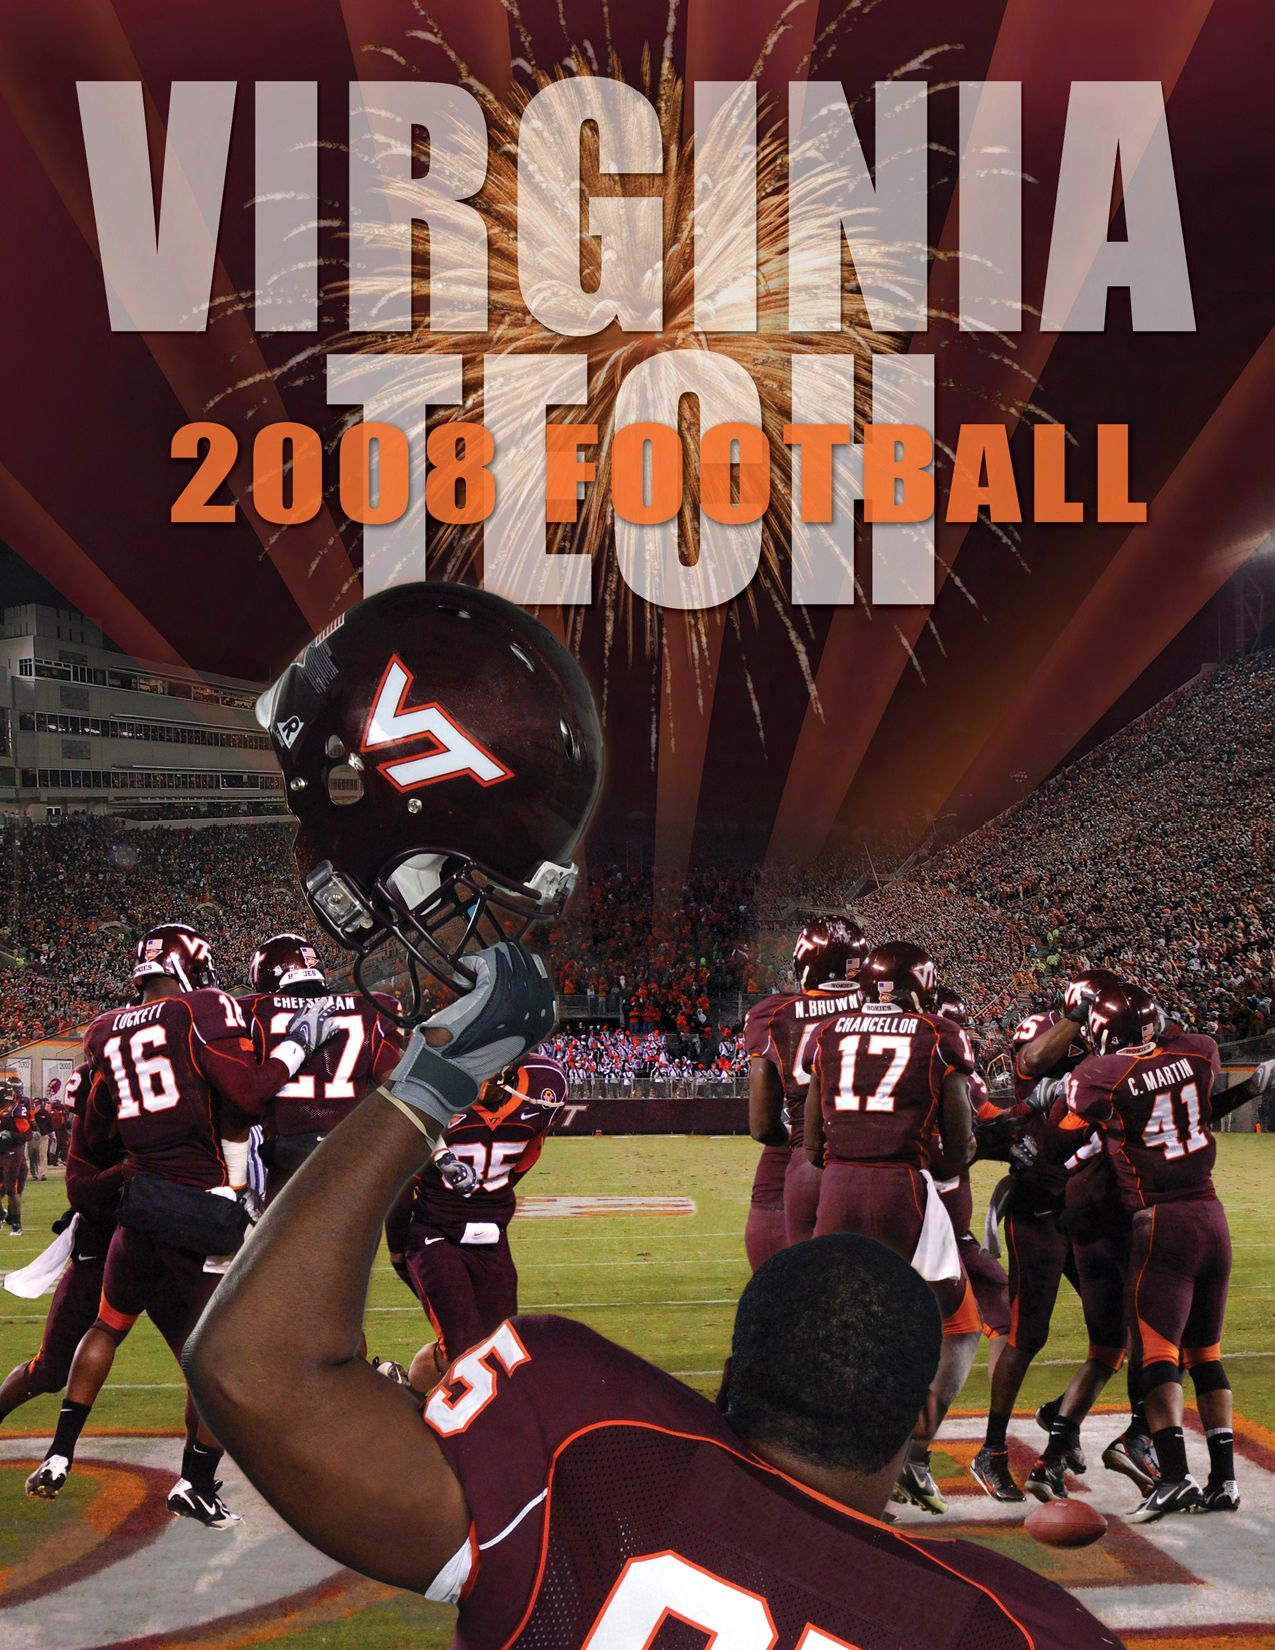 356bf6148 2008 Football Media Guide by Virginia Tech Athletics - issuu